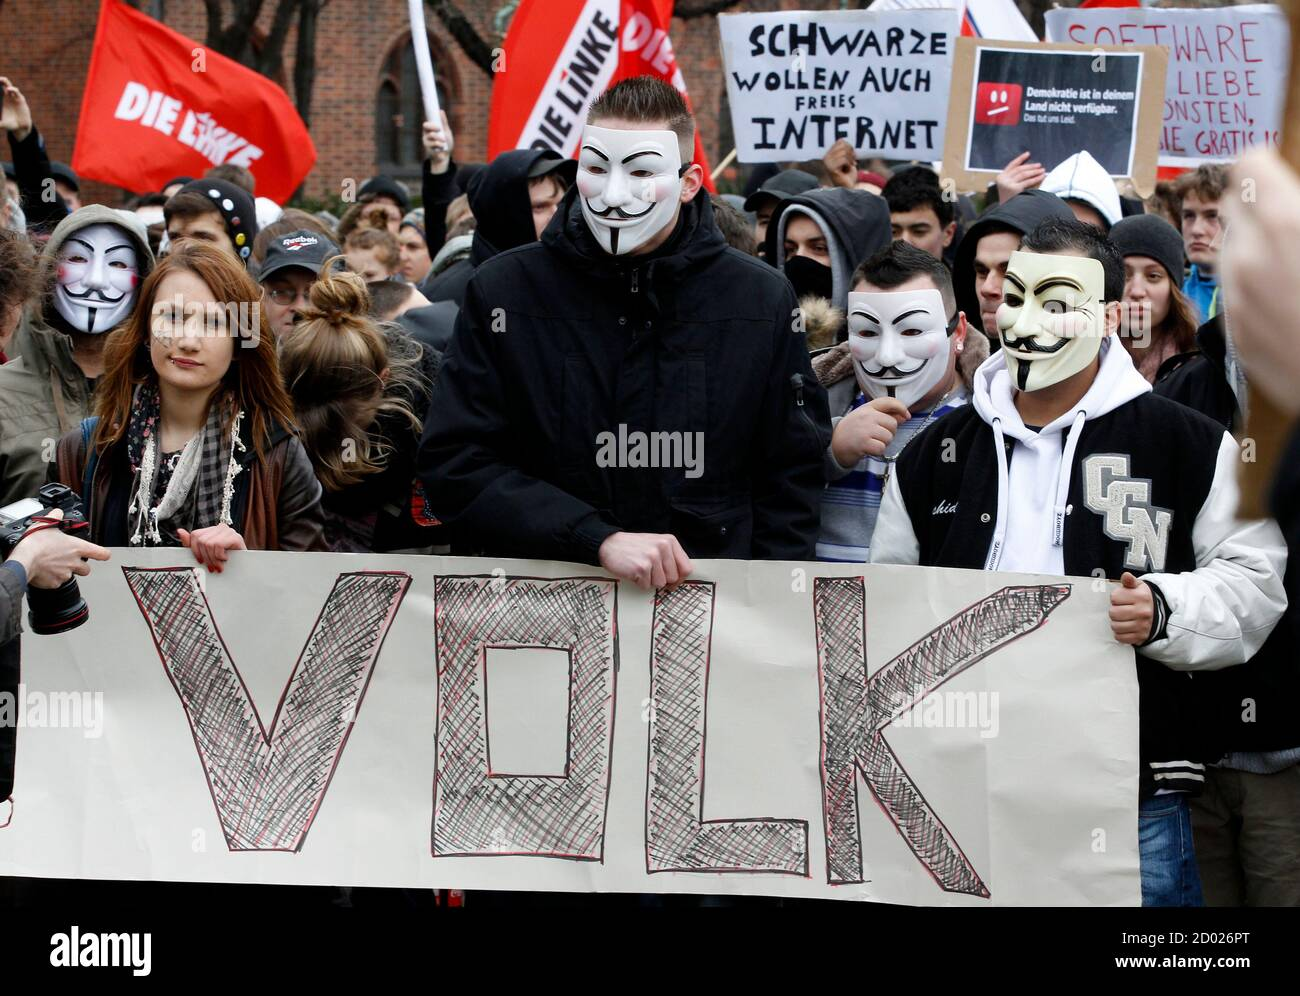 """Protestors wearing Guy Fawkes masks participate in a demonstration against the Anti-Counterfeiting Trade Agreement (ACTA) in Berlin February 25, 2012. Protesters fear that ACTA, which aims to cut trademark theft and other online piracy, will curtail freedom of expression, curb their freedom to download movies and music for free and encourage Internet surveillance. The banner reads """"People"""". REUTERS/Tobias Schwarz (GERMANY - Tags: POLITICS CIVIL UNREST) Foto de stock"""